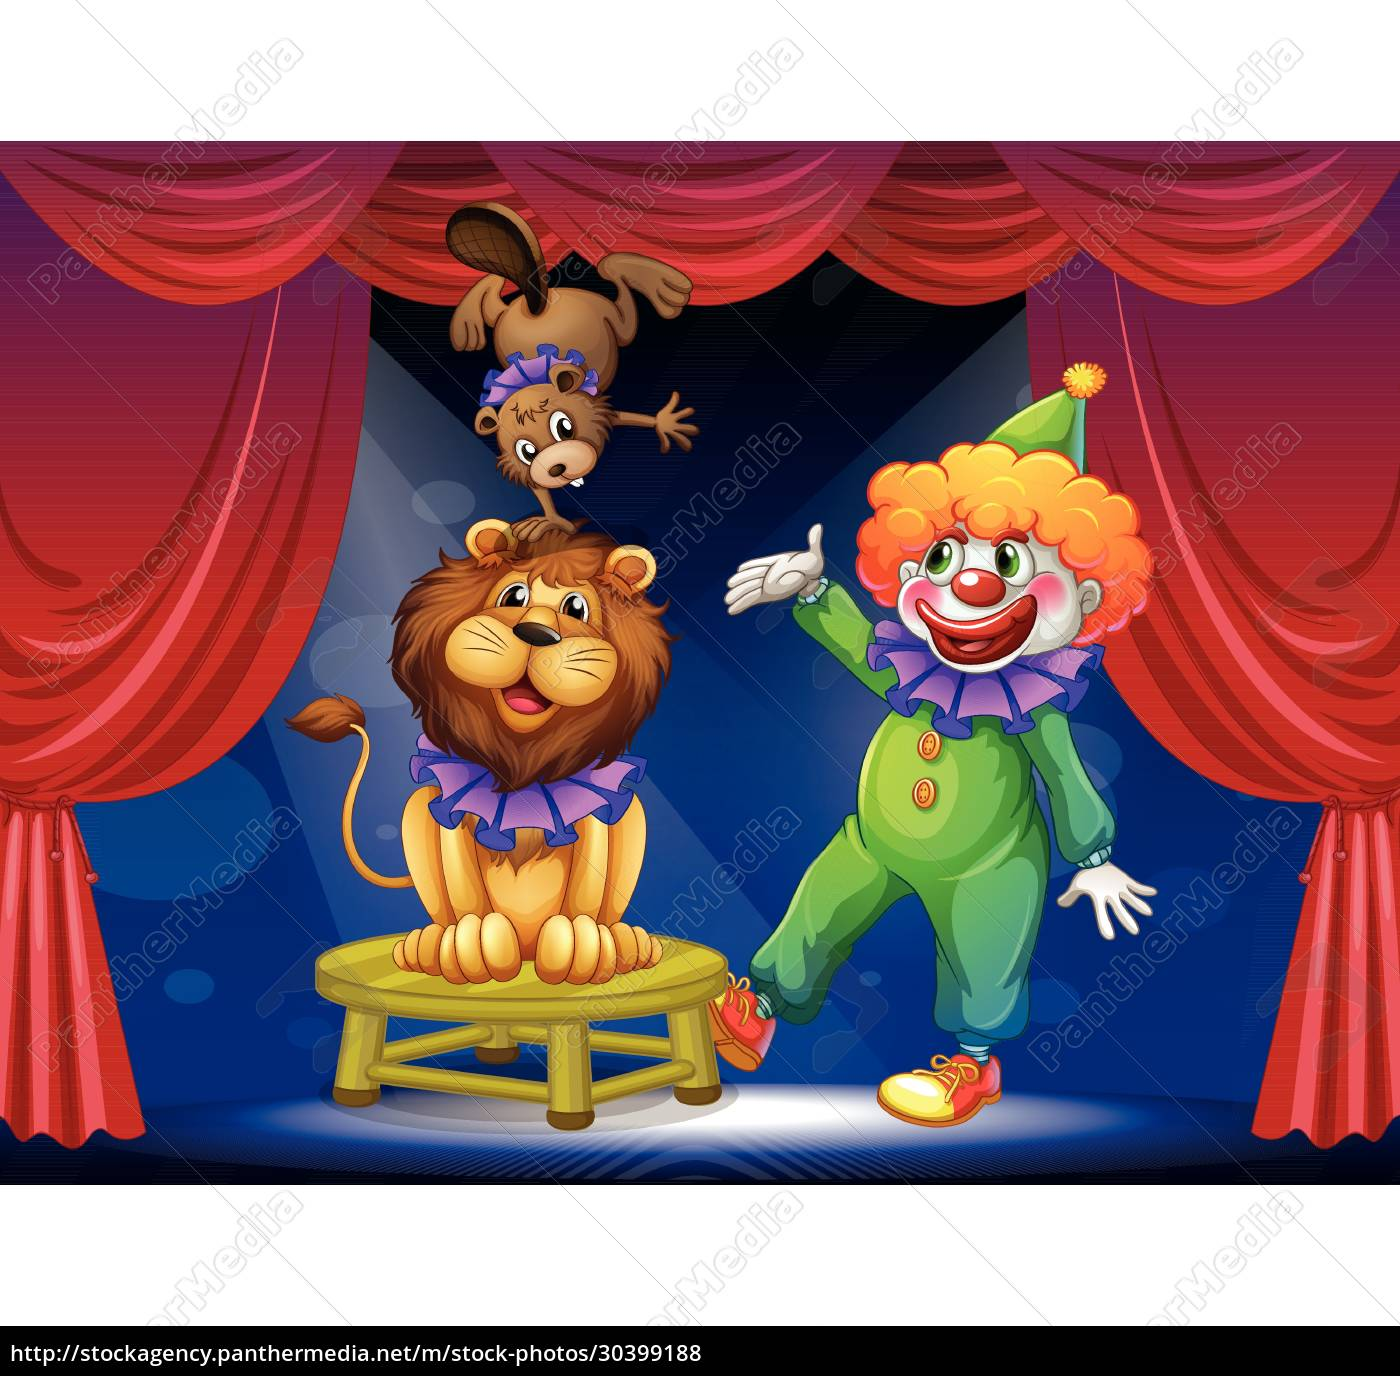 a, clown, with, animals, at, the - 30399188